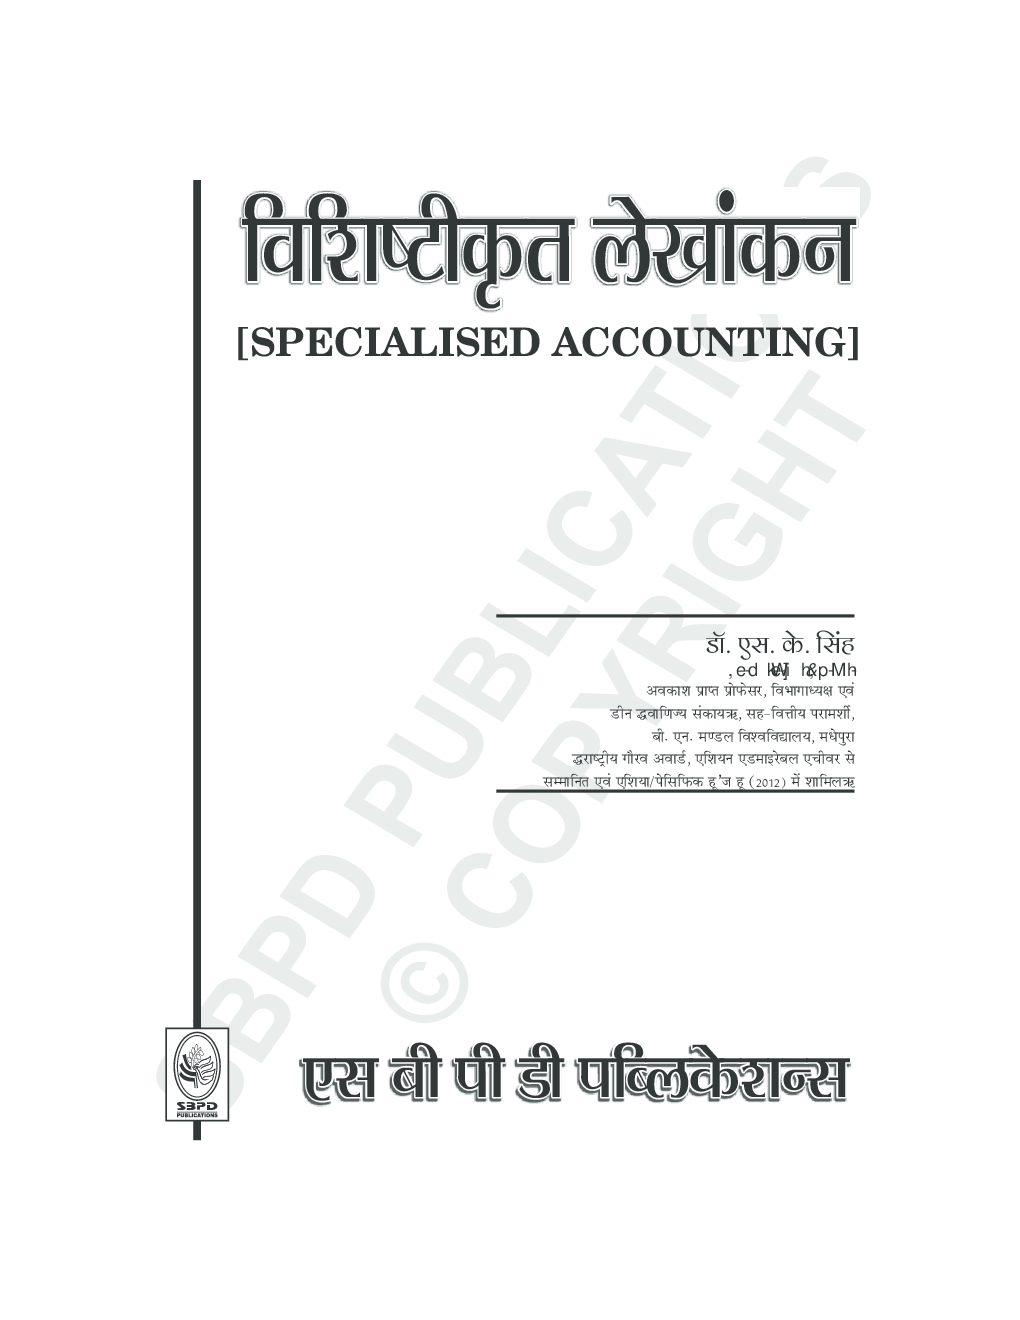 Specialised Accounting Hindi Language - Page 3